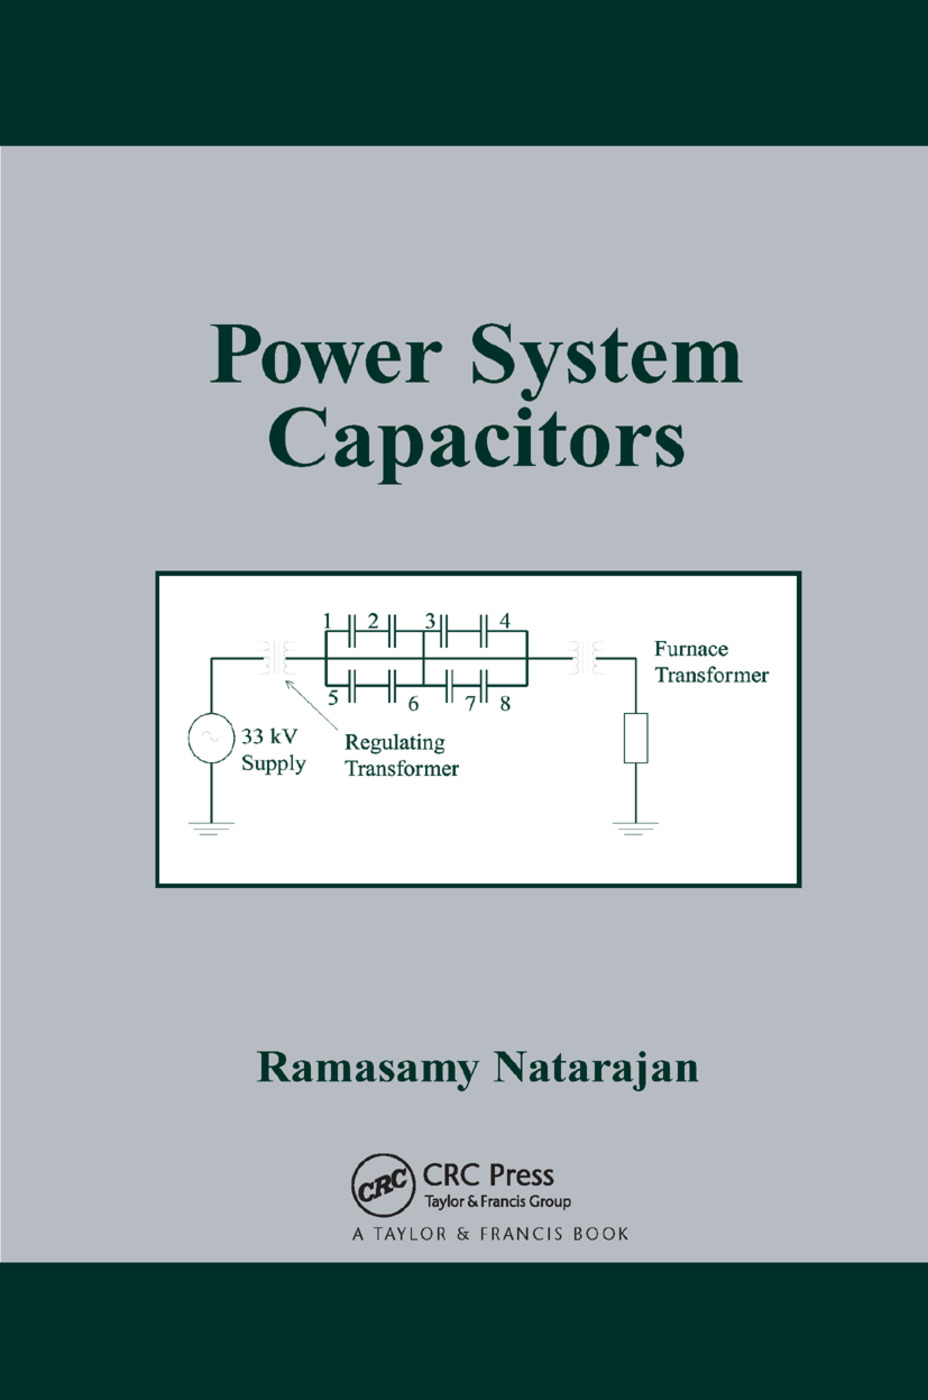 Power System Capacitors